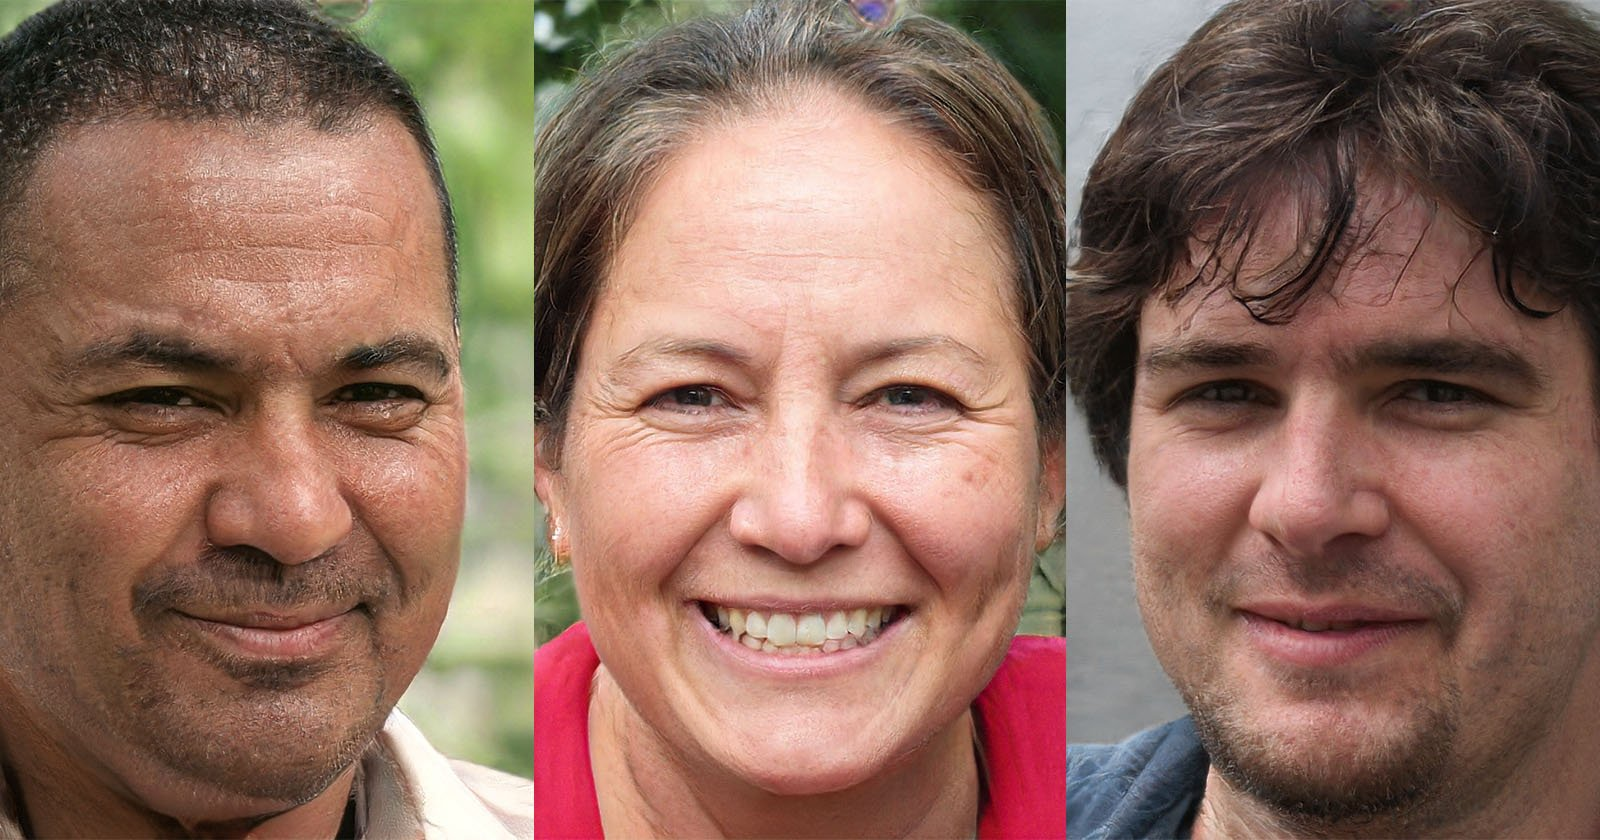 These Portraits Were Made by AI: None of These People Exist